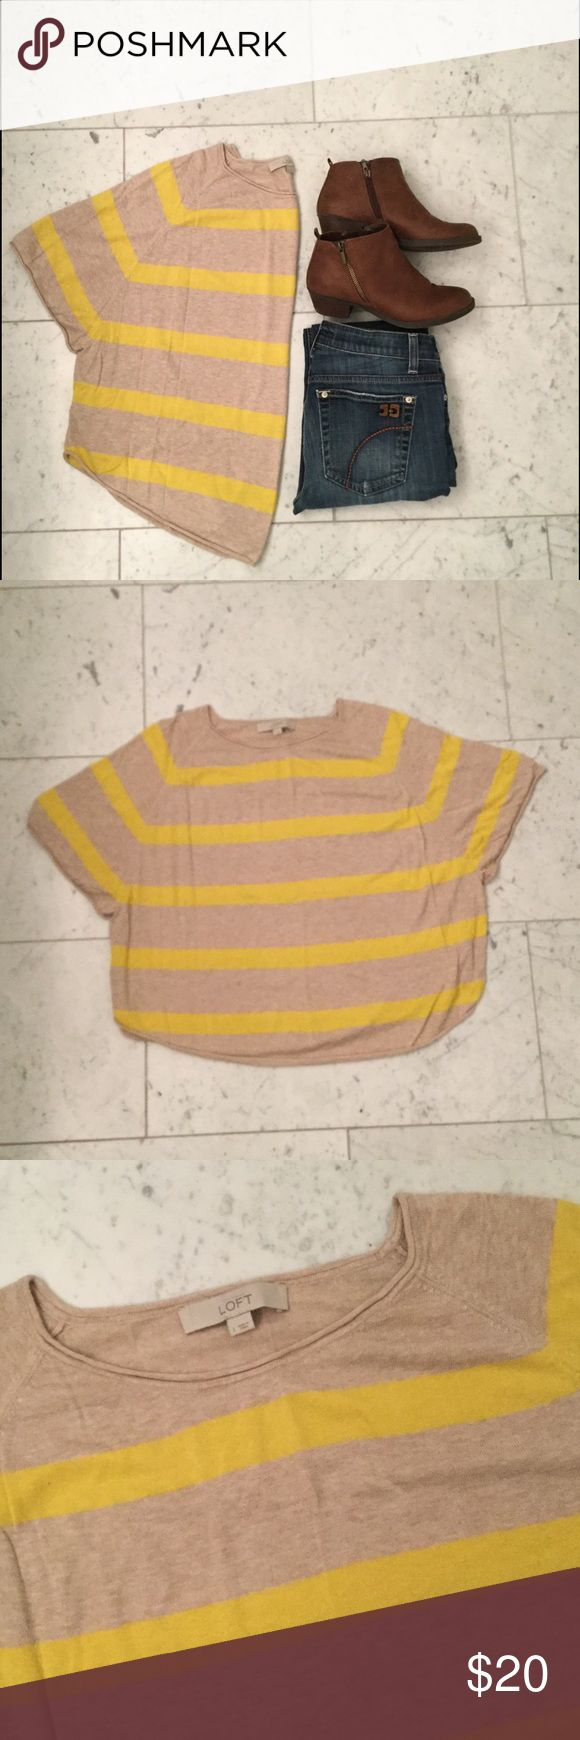 """✨SALE✨ LOFT Yellow & Tan Striped Short Sleeve Top A great light sweater material with short sleeves for a poncho style. Well loved, but in great condition. Size large but fits like a small/medium. 21"""" length (collar to hem on front). LOFT Sweaters Shrugs & Ponchos"""